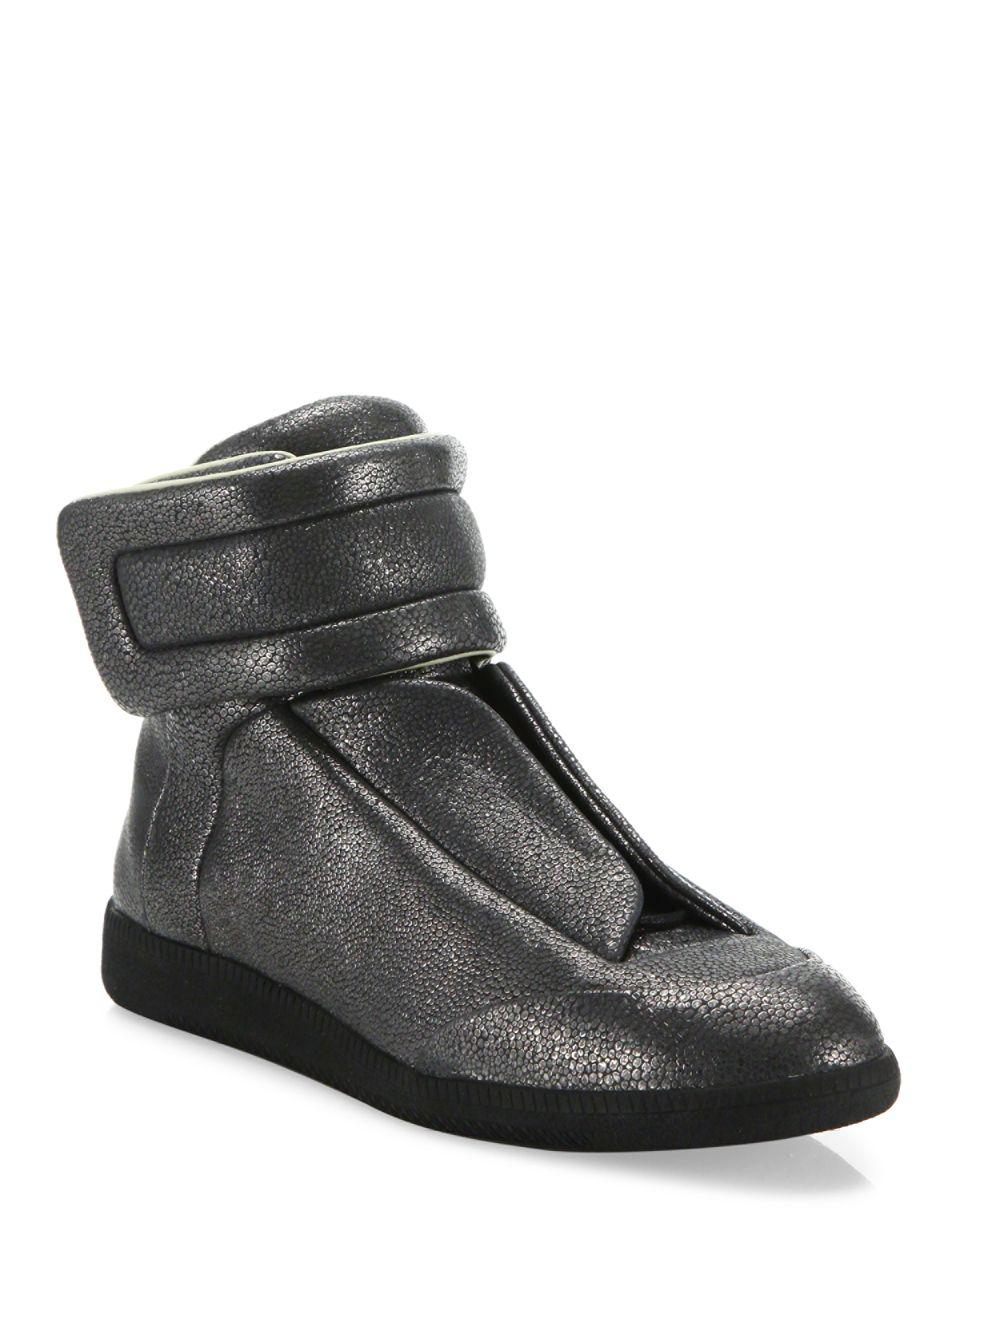 f9f91b887d1 Maison Margiela Stingray Future Leather High-top Sneakers in Gray ...